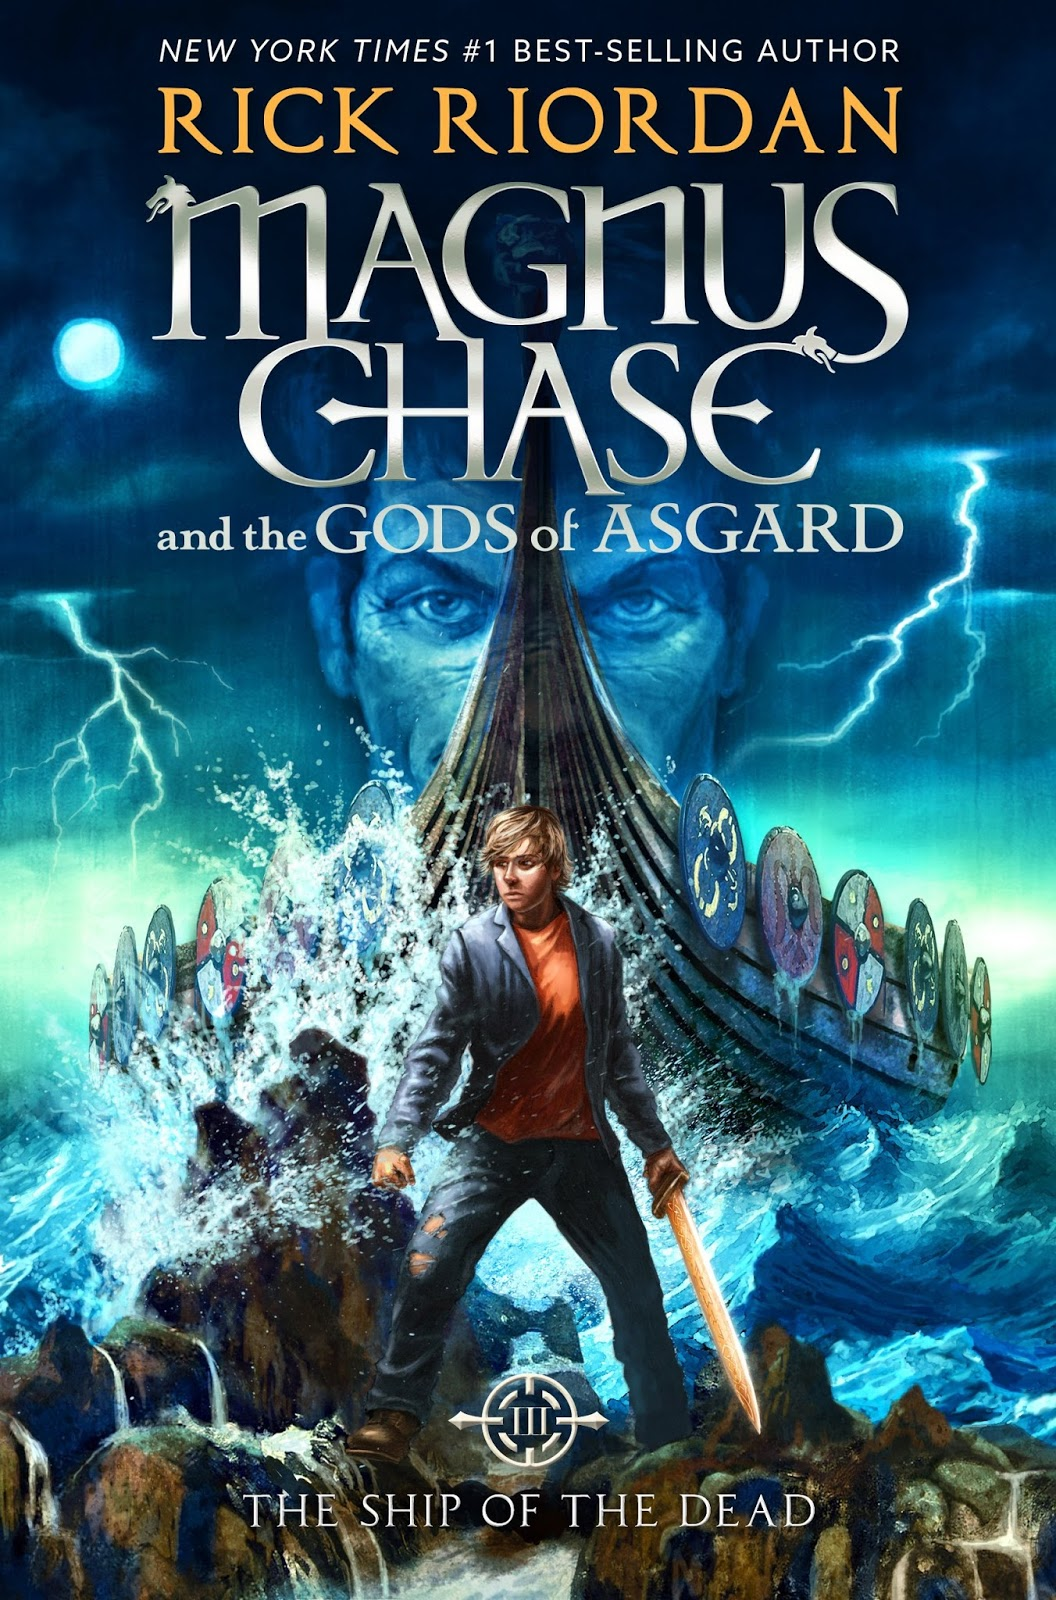 Magnus Chase and the Gods of Asgard: The Ship of the Dead by Rick Riordan